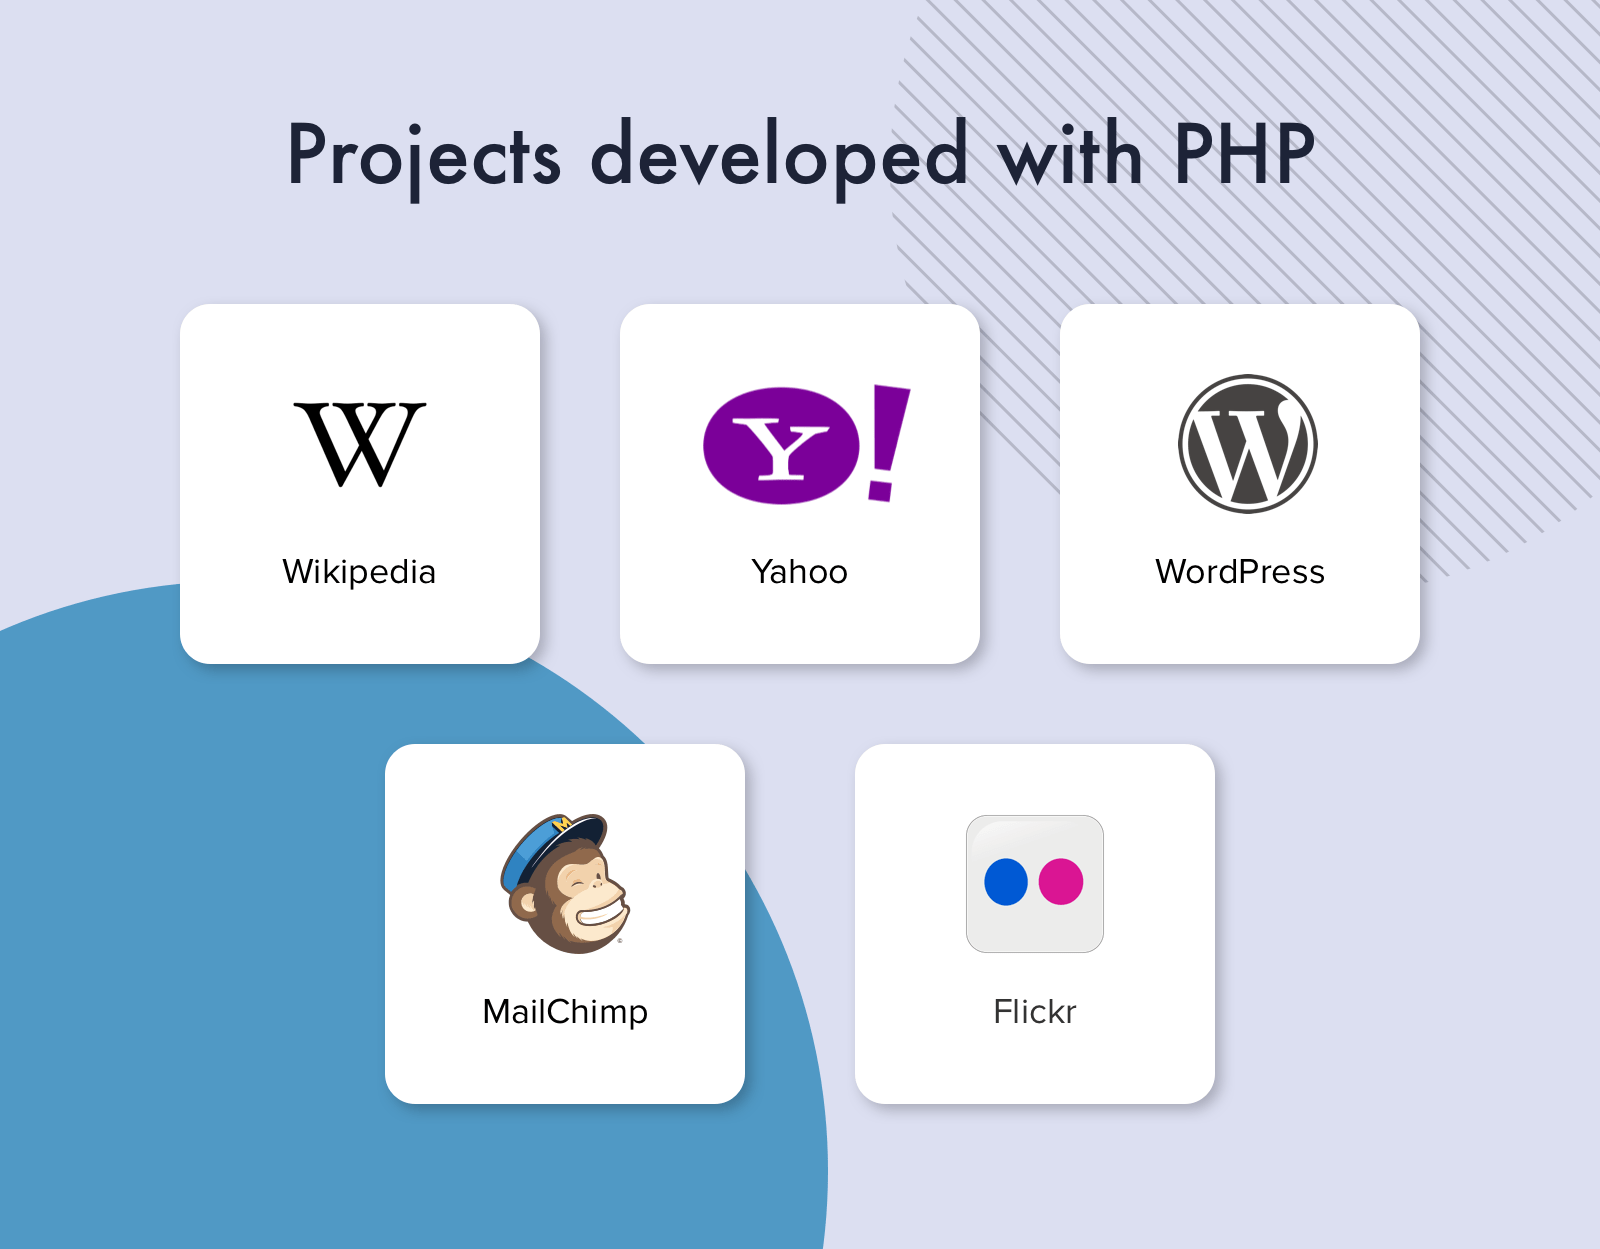 Projects developed with PHP